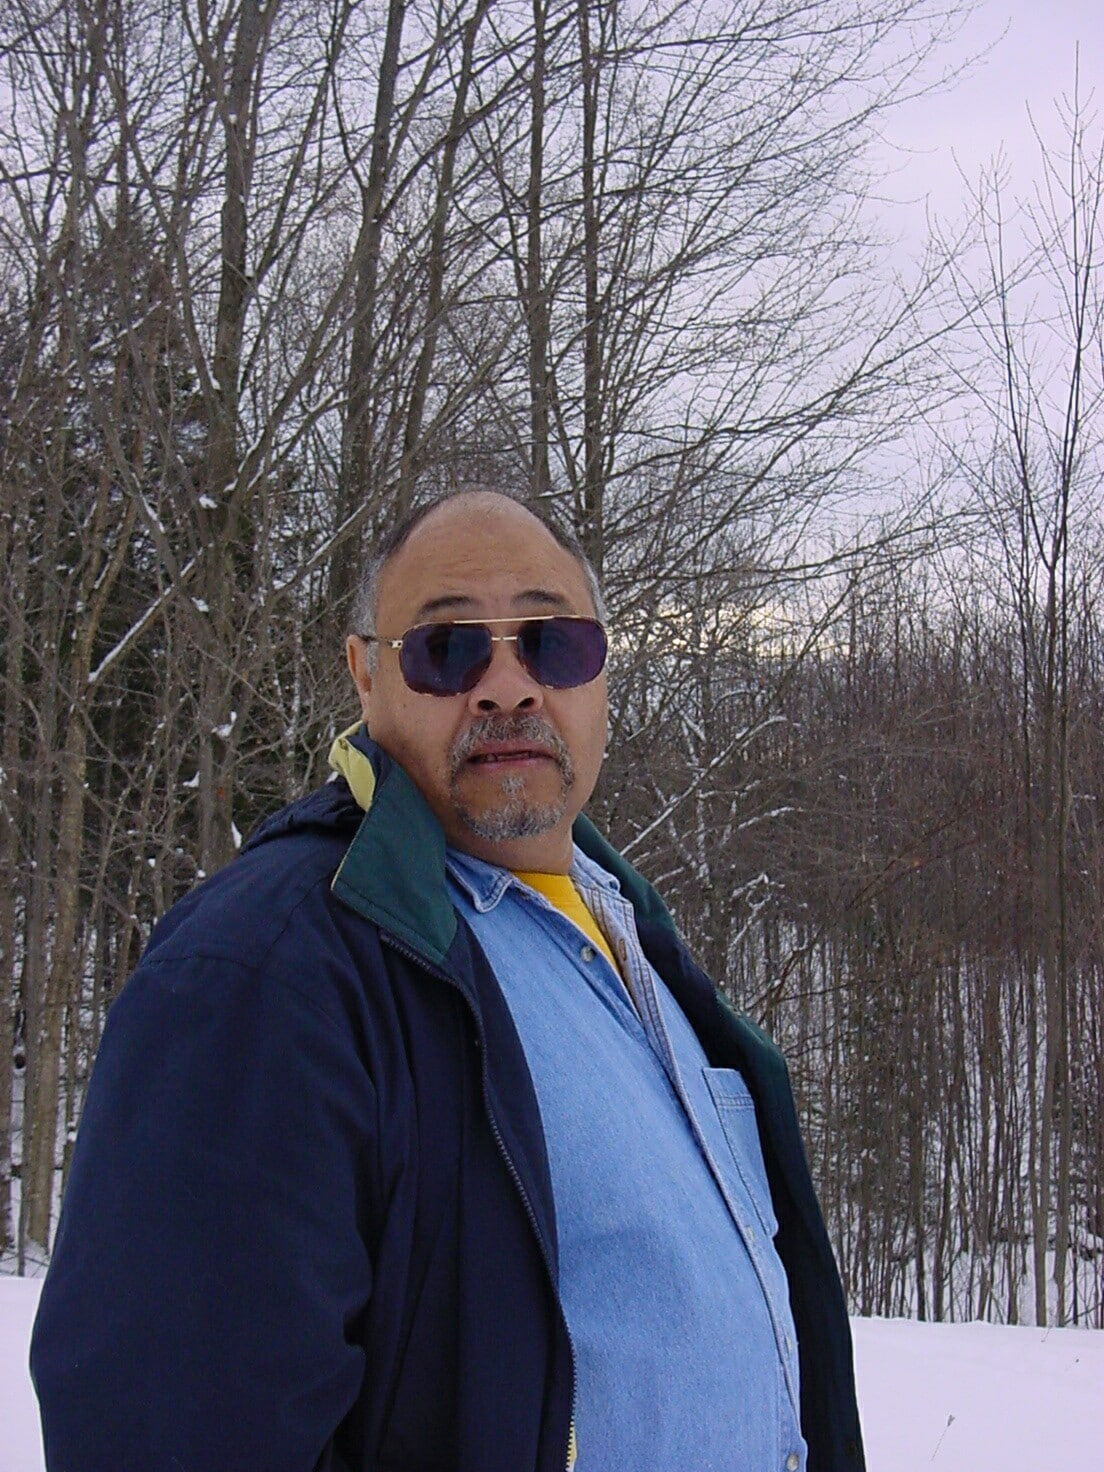 Richard From Vermont, United States